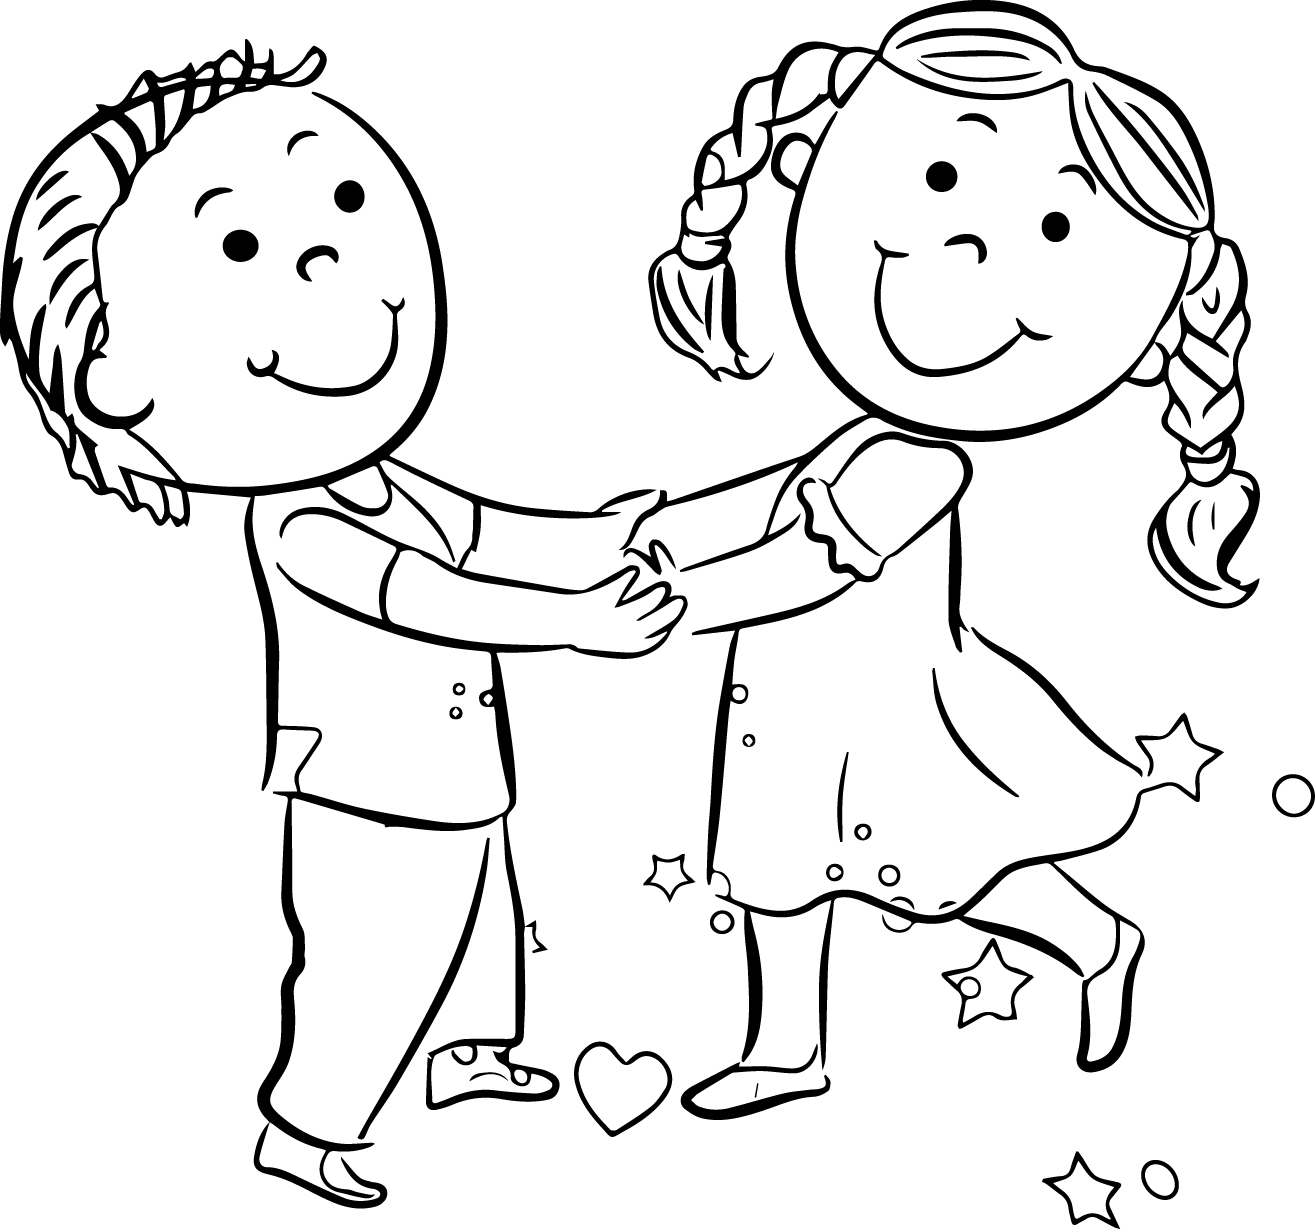 1315x1229 Children Sharing Coloring Pages Az Page Printable Childrens Disney